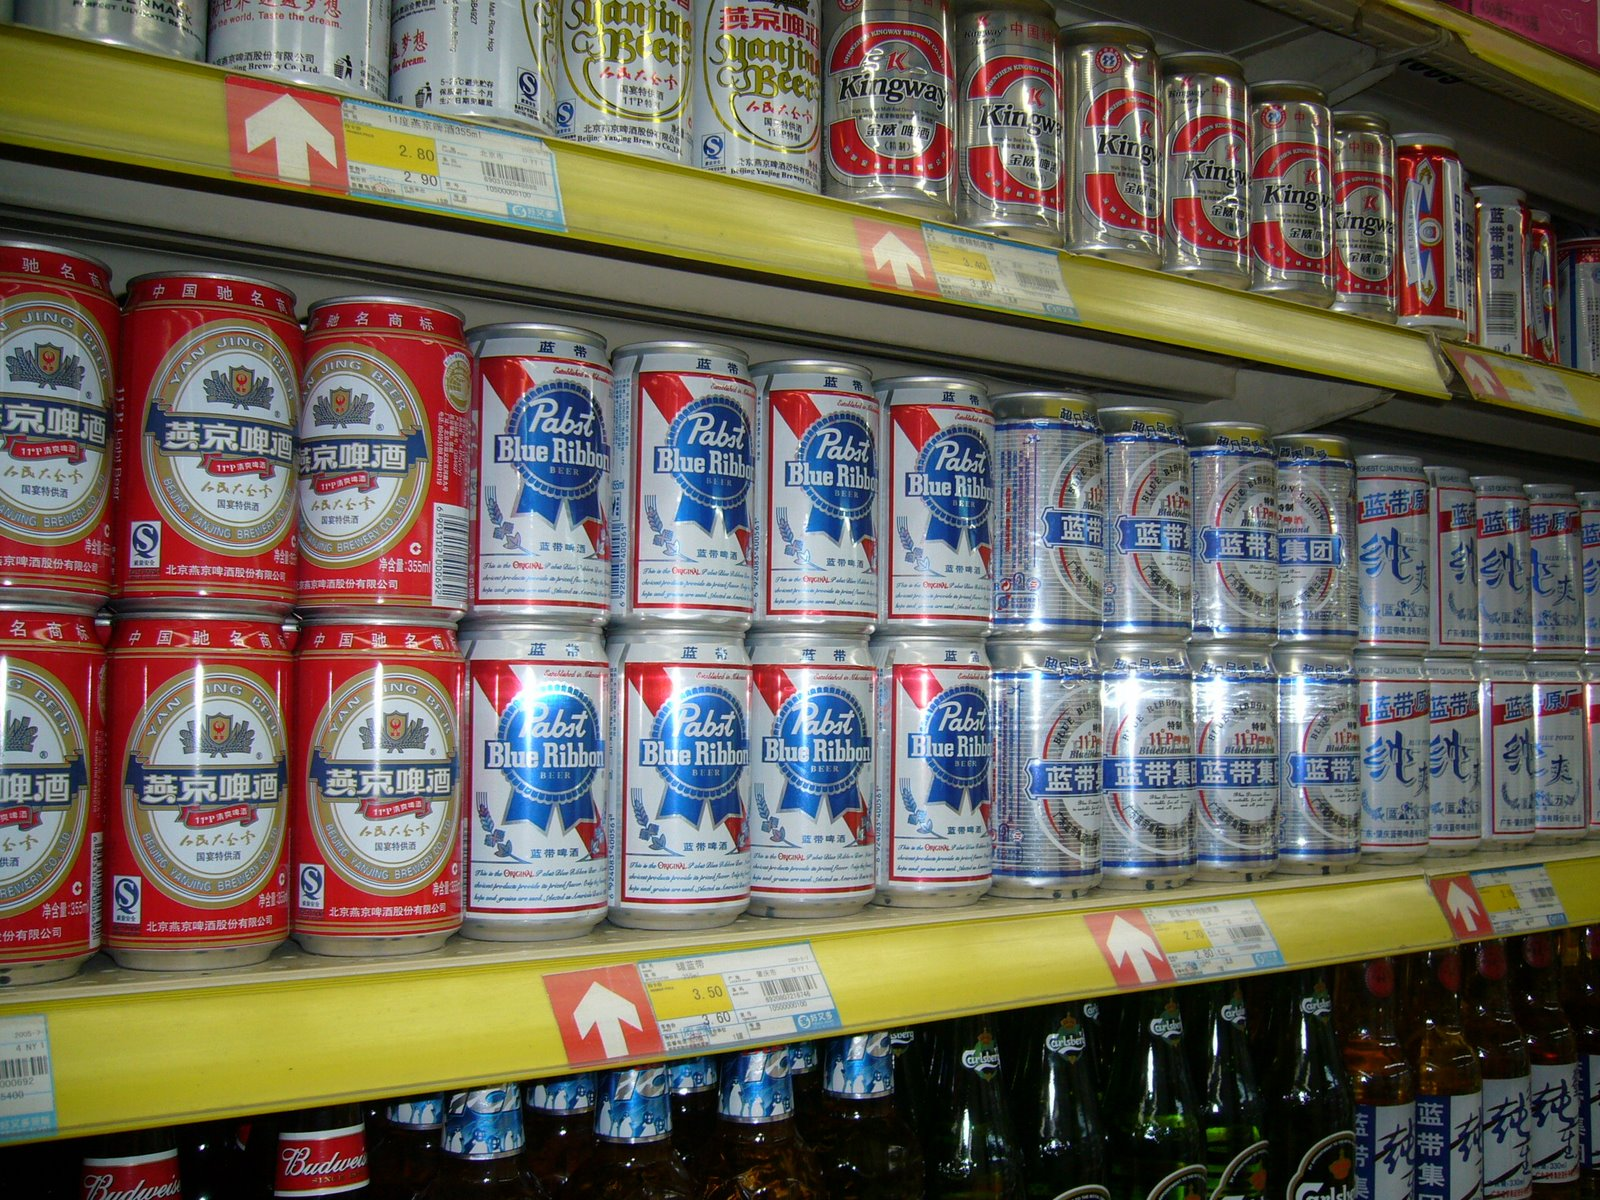 pabst beer, selling at about 30 cents per can